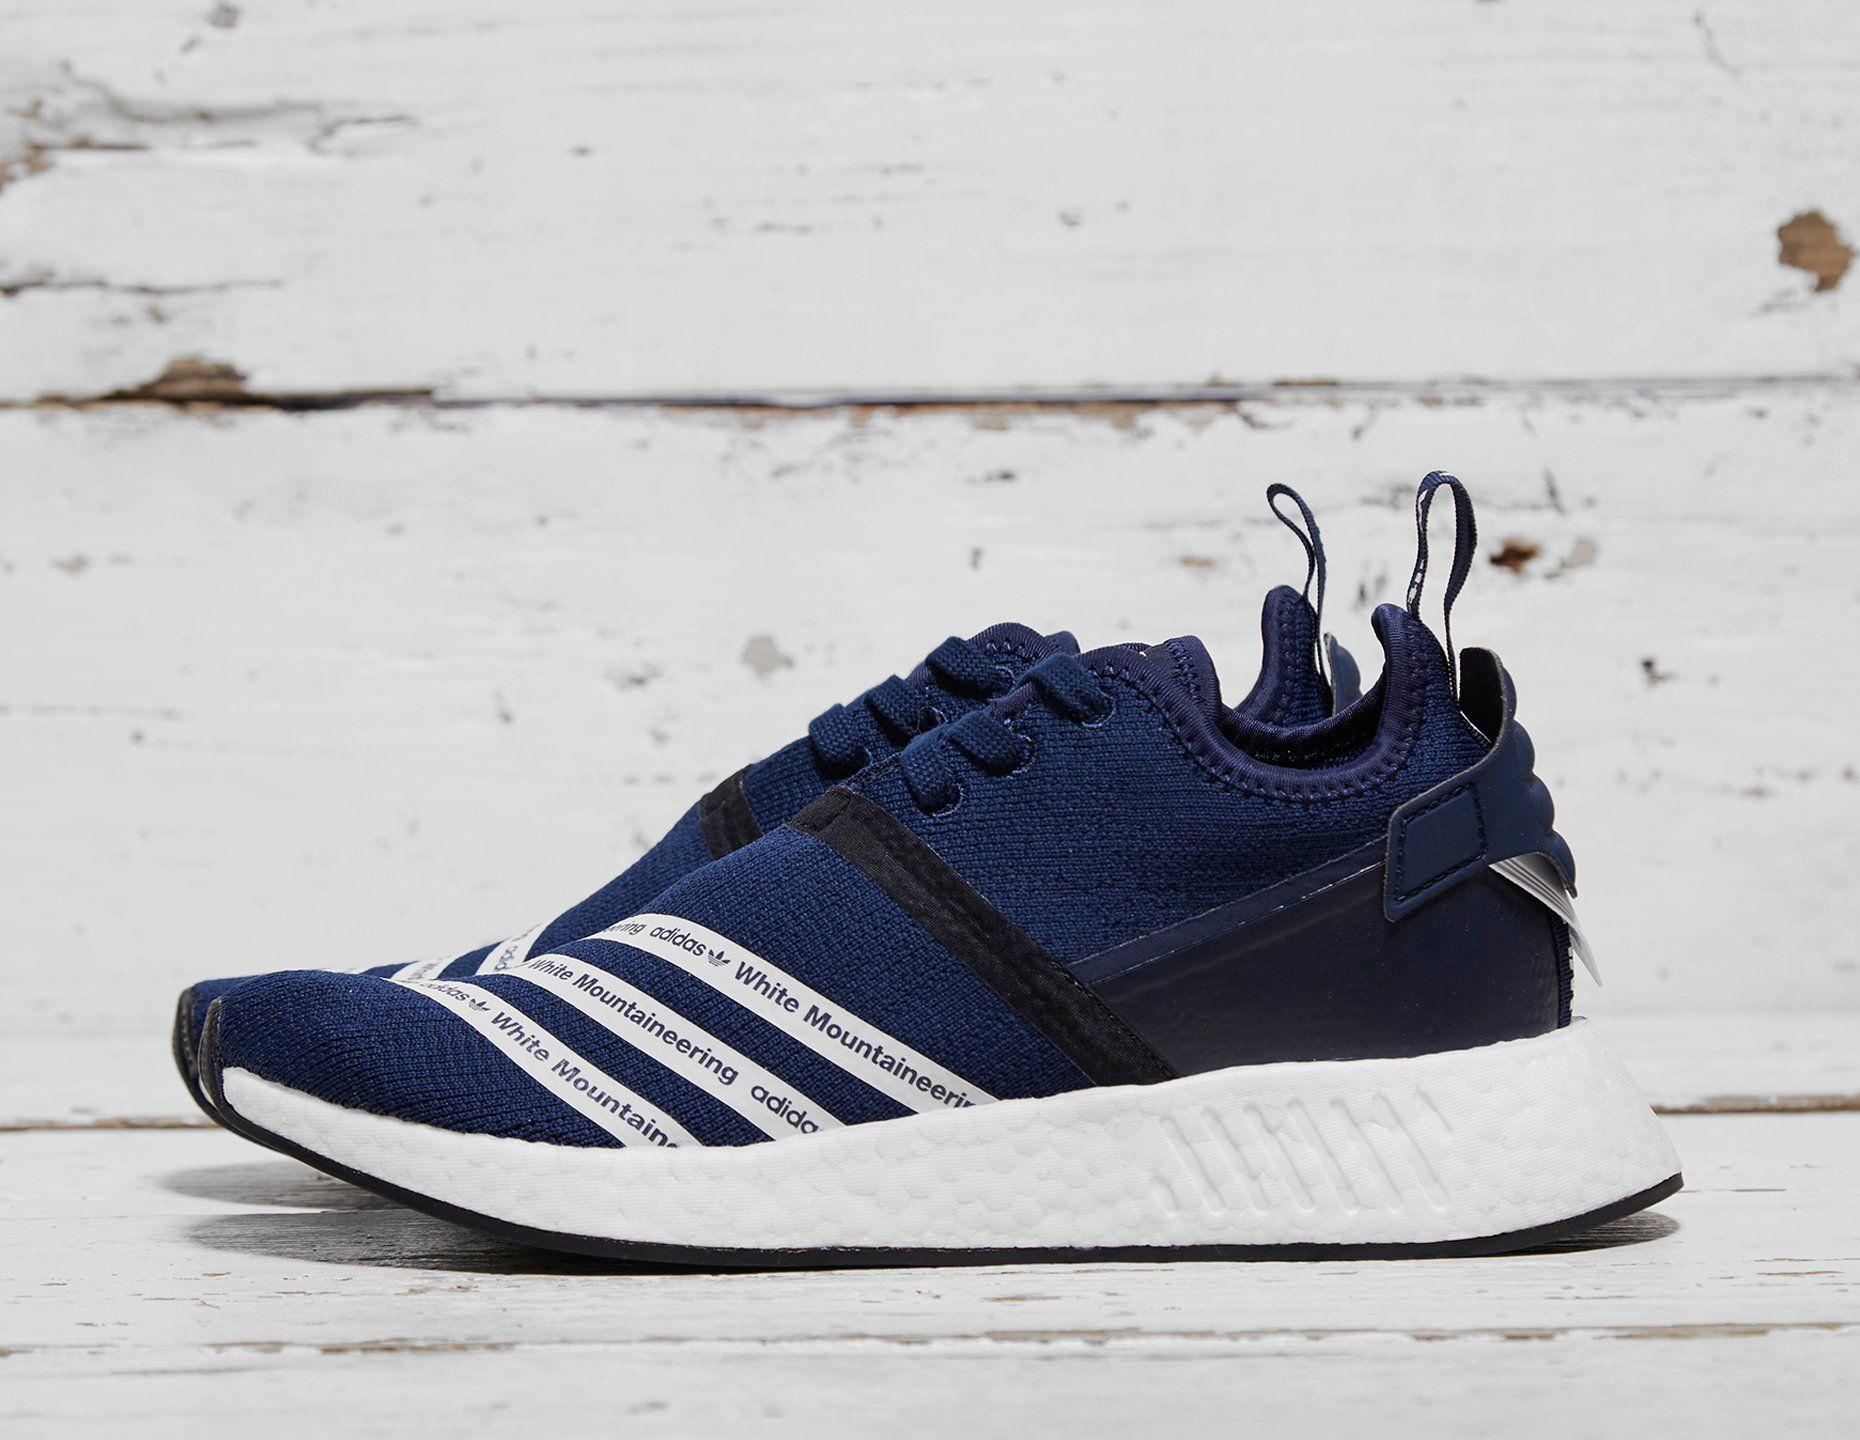 adidas x White Mountaineering NMD XR1